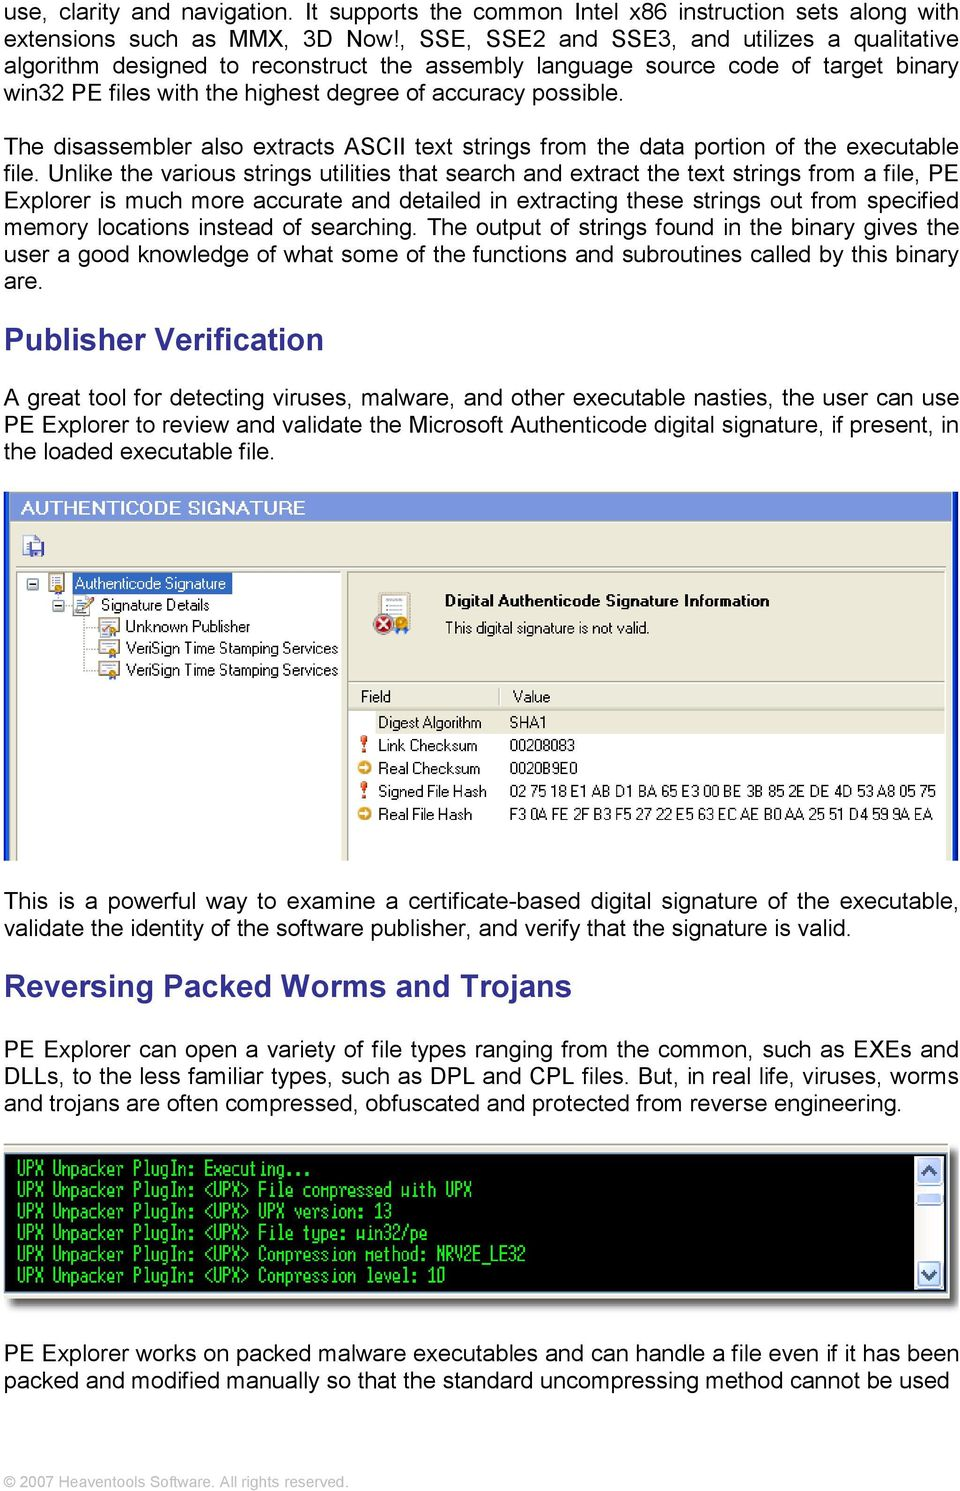 PE Explorer  Heaventools  Malware Code Analysis Made Easy - PDF